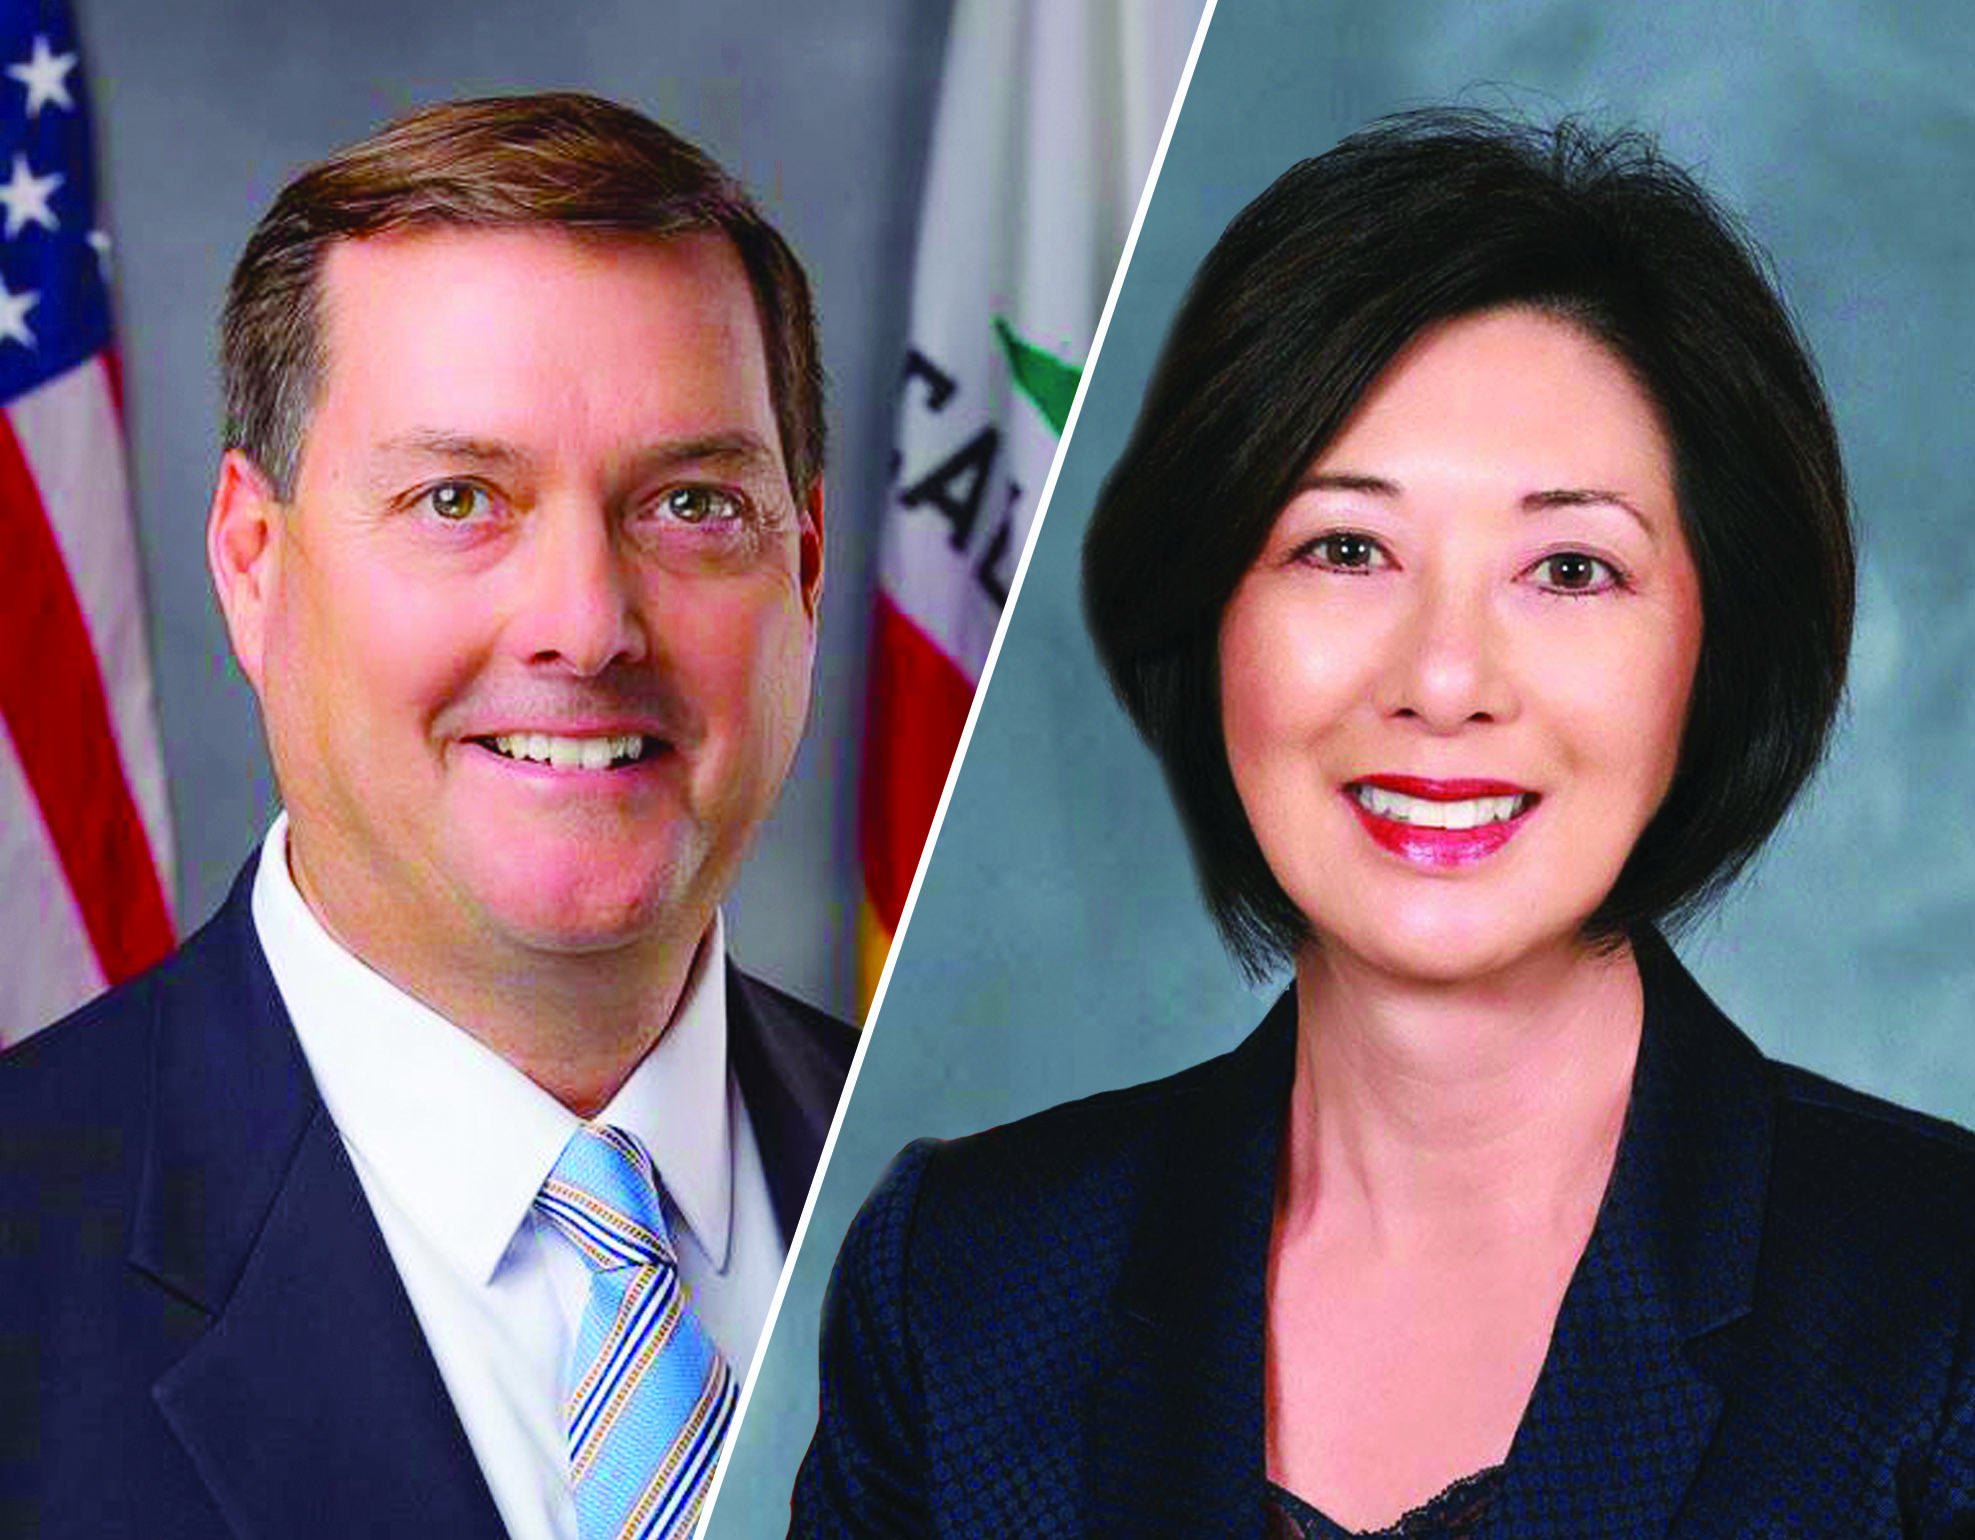 Assemblymember Bill Brough is currently facing accusations of sexual misconduct from a handful of women including Orange County Supervisor Lisa Bartlett. Photo: Courtesy of the office of Brough and Bartlett